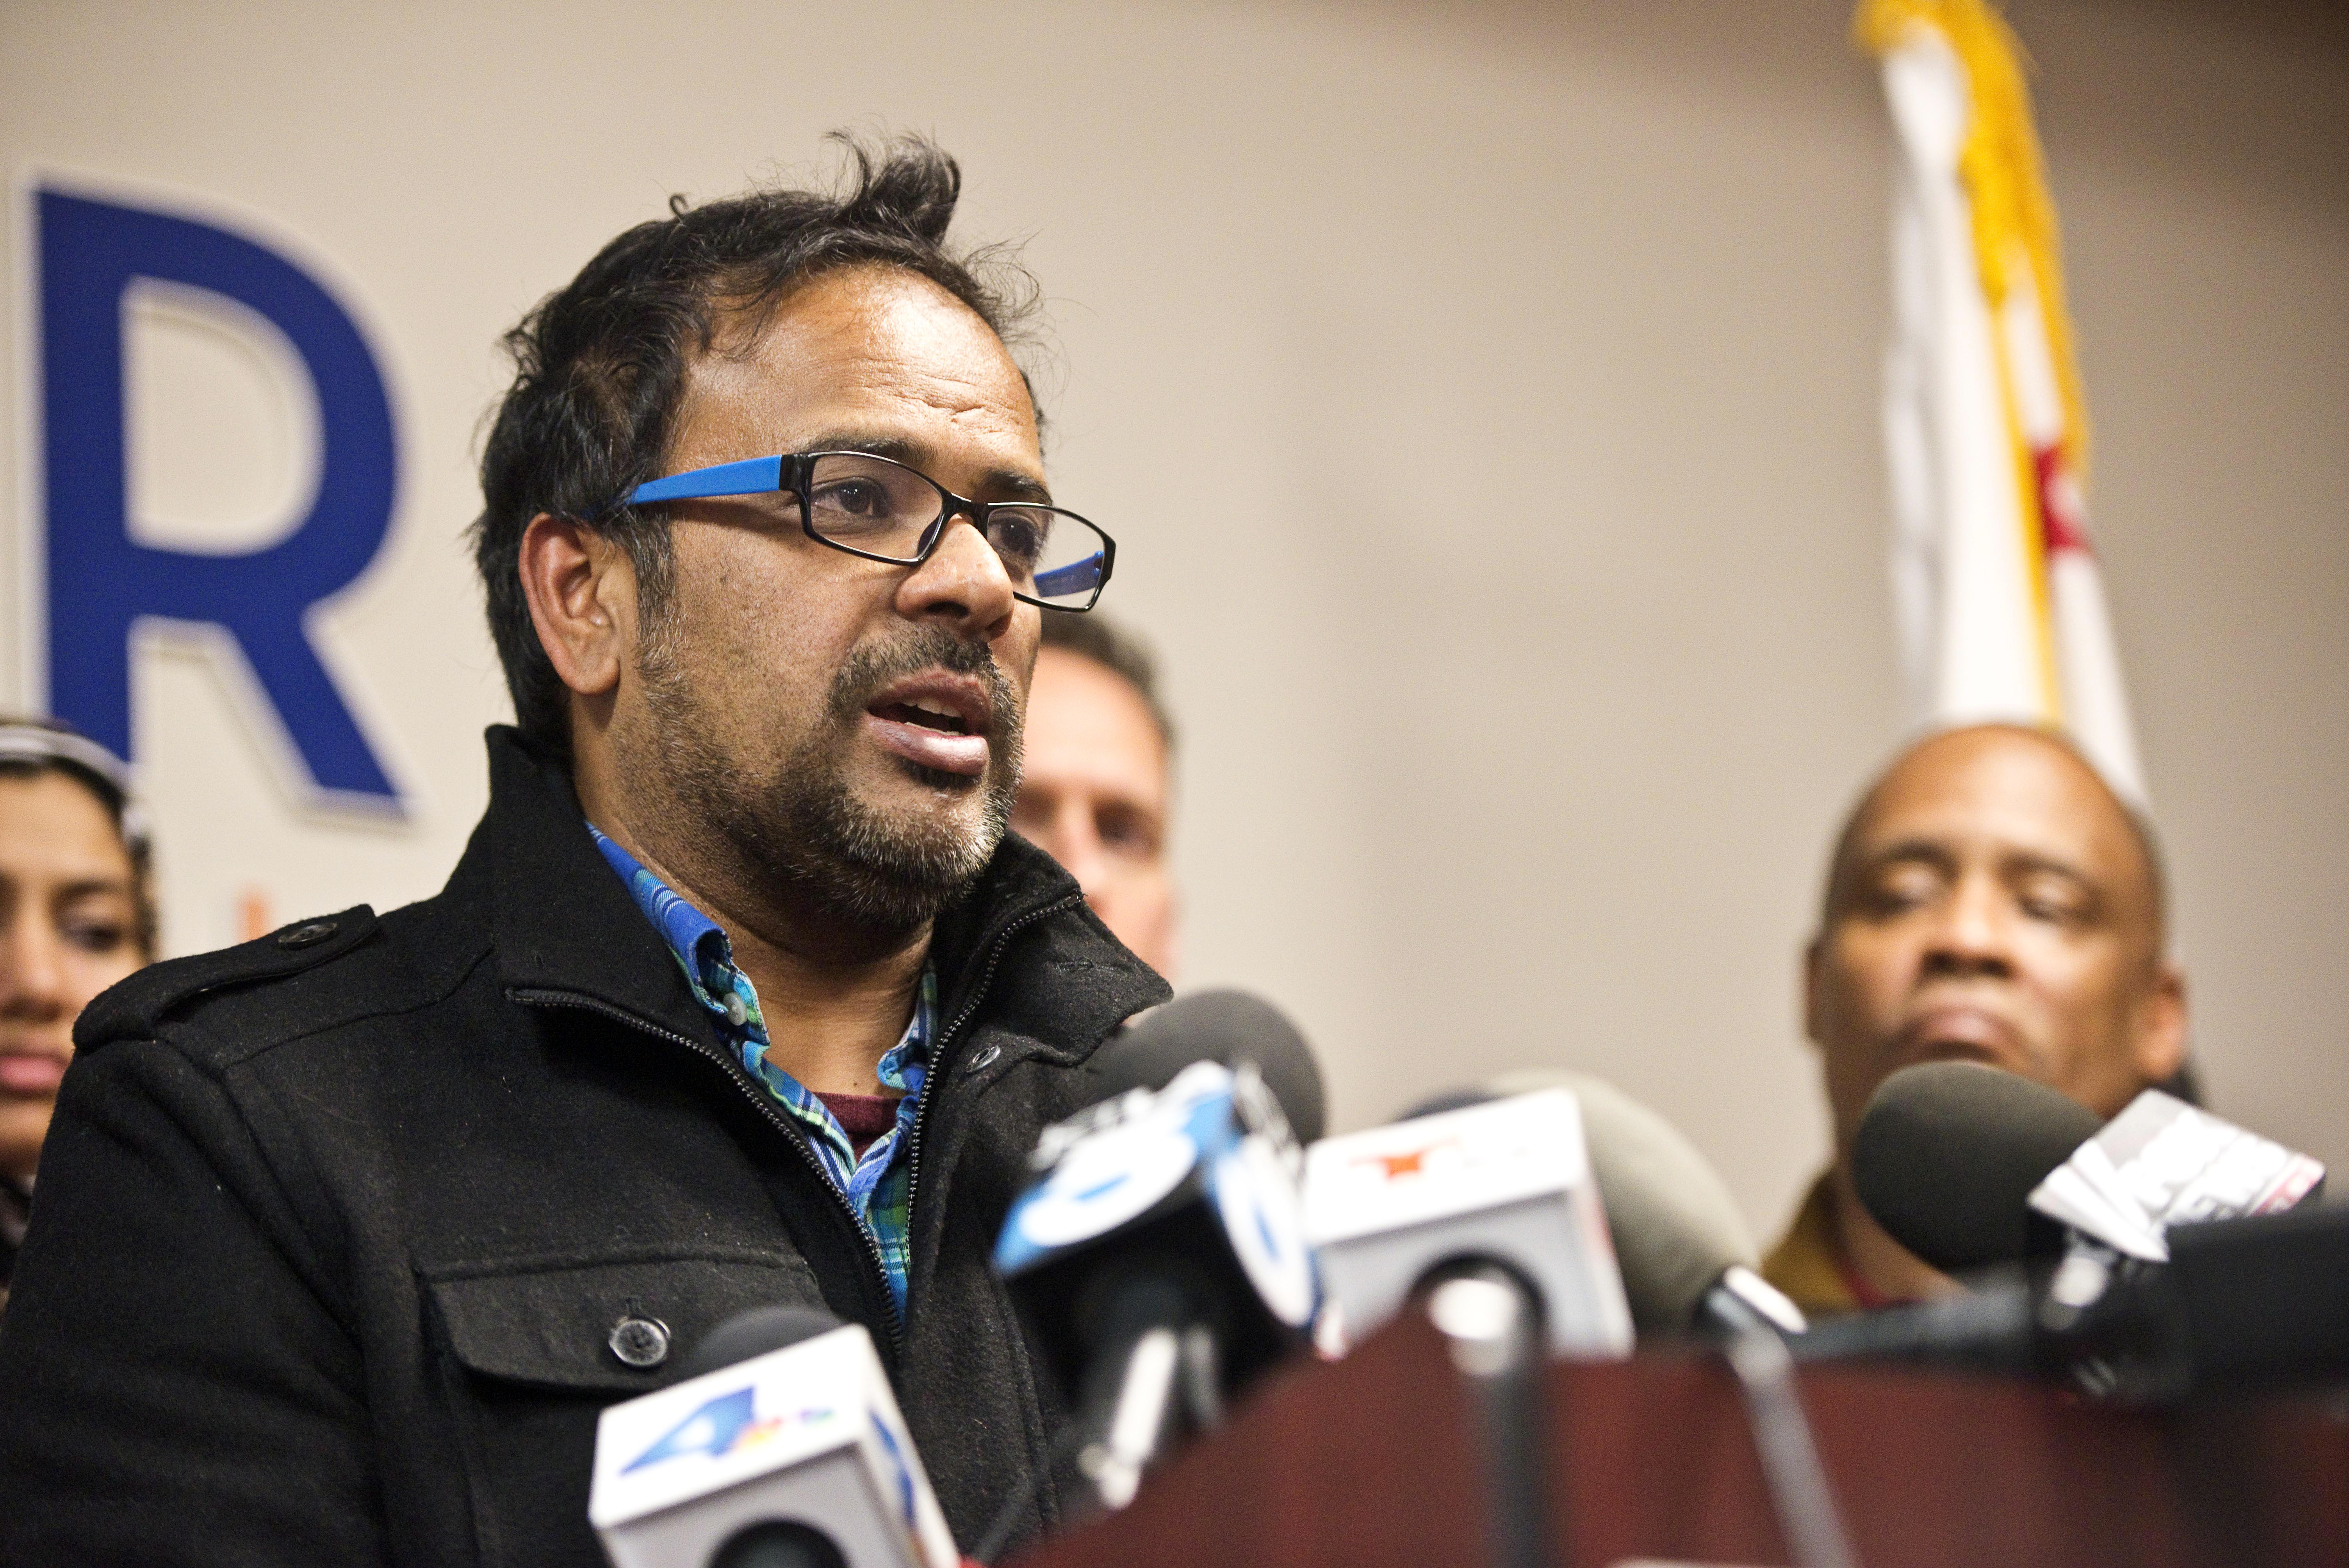 Farhan Khan, brother-in-law of one of the suspects involved in a shooting in San Bernardino, Calif., speaks during a news conference at the Greater Los Angeles Area office of the Council on American-Islamic Relations, in Anaheim, Calif. Multiple attackers opened fire on a banquet at a social services center for the disabled in San Bernardino on Wednesday, killing multiple people and sending police on a manhunt for suspects. (Matt Masin/The Orange County Register via AP)